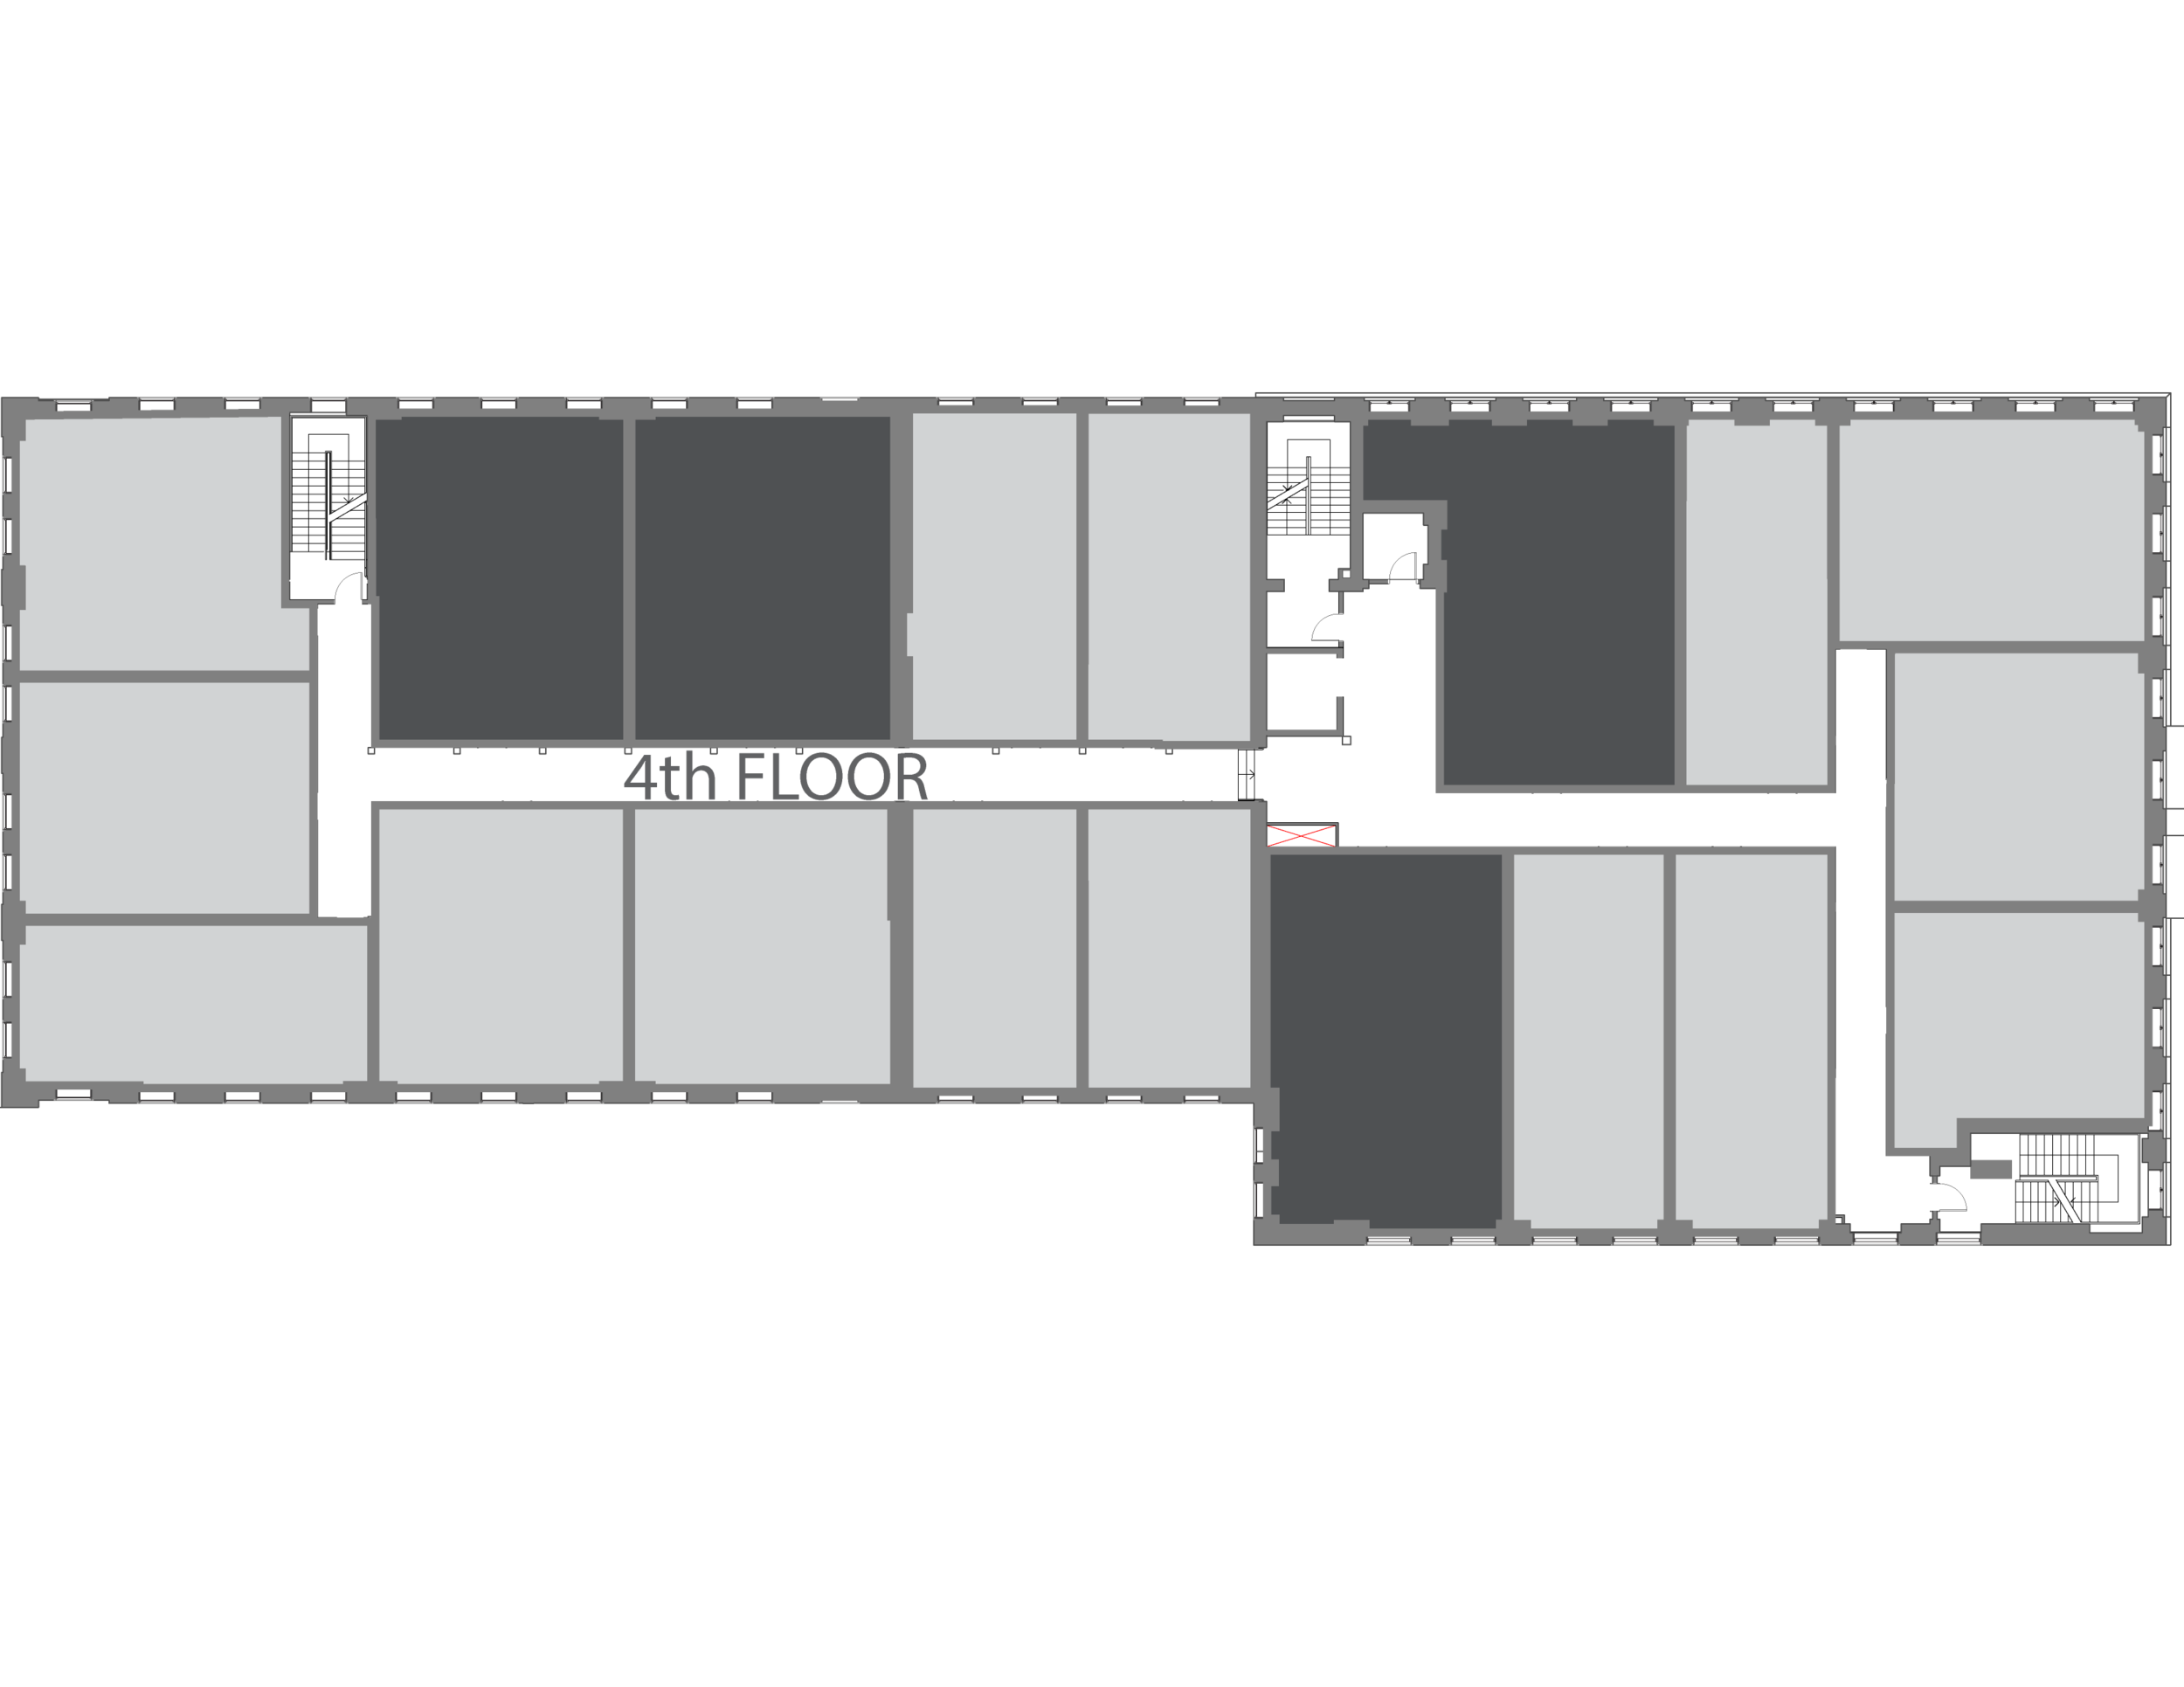 Doyle_plan  NUTS&BOLTS_4TH FLOOR.png